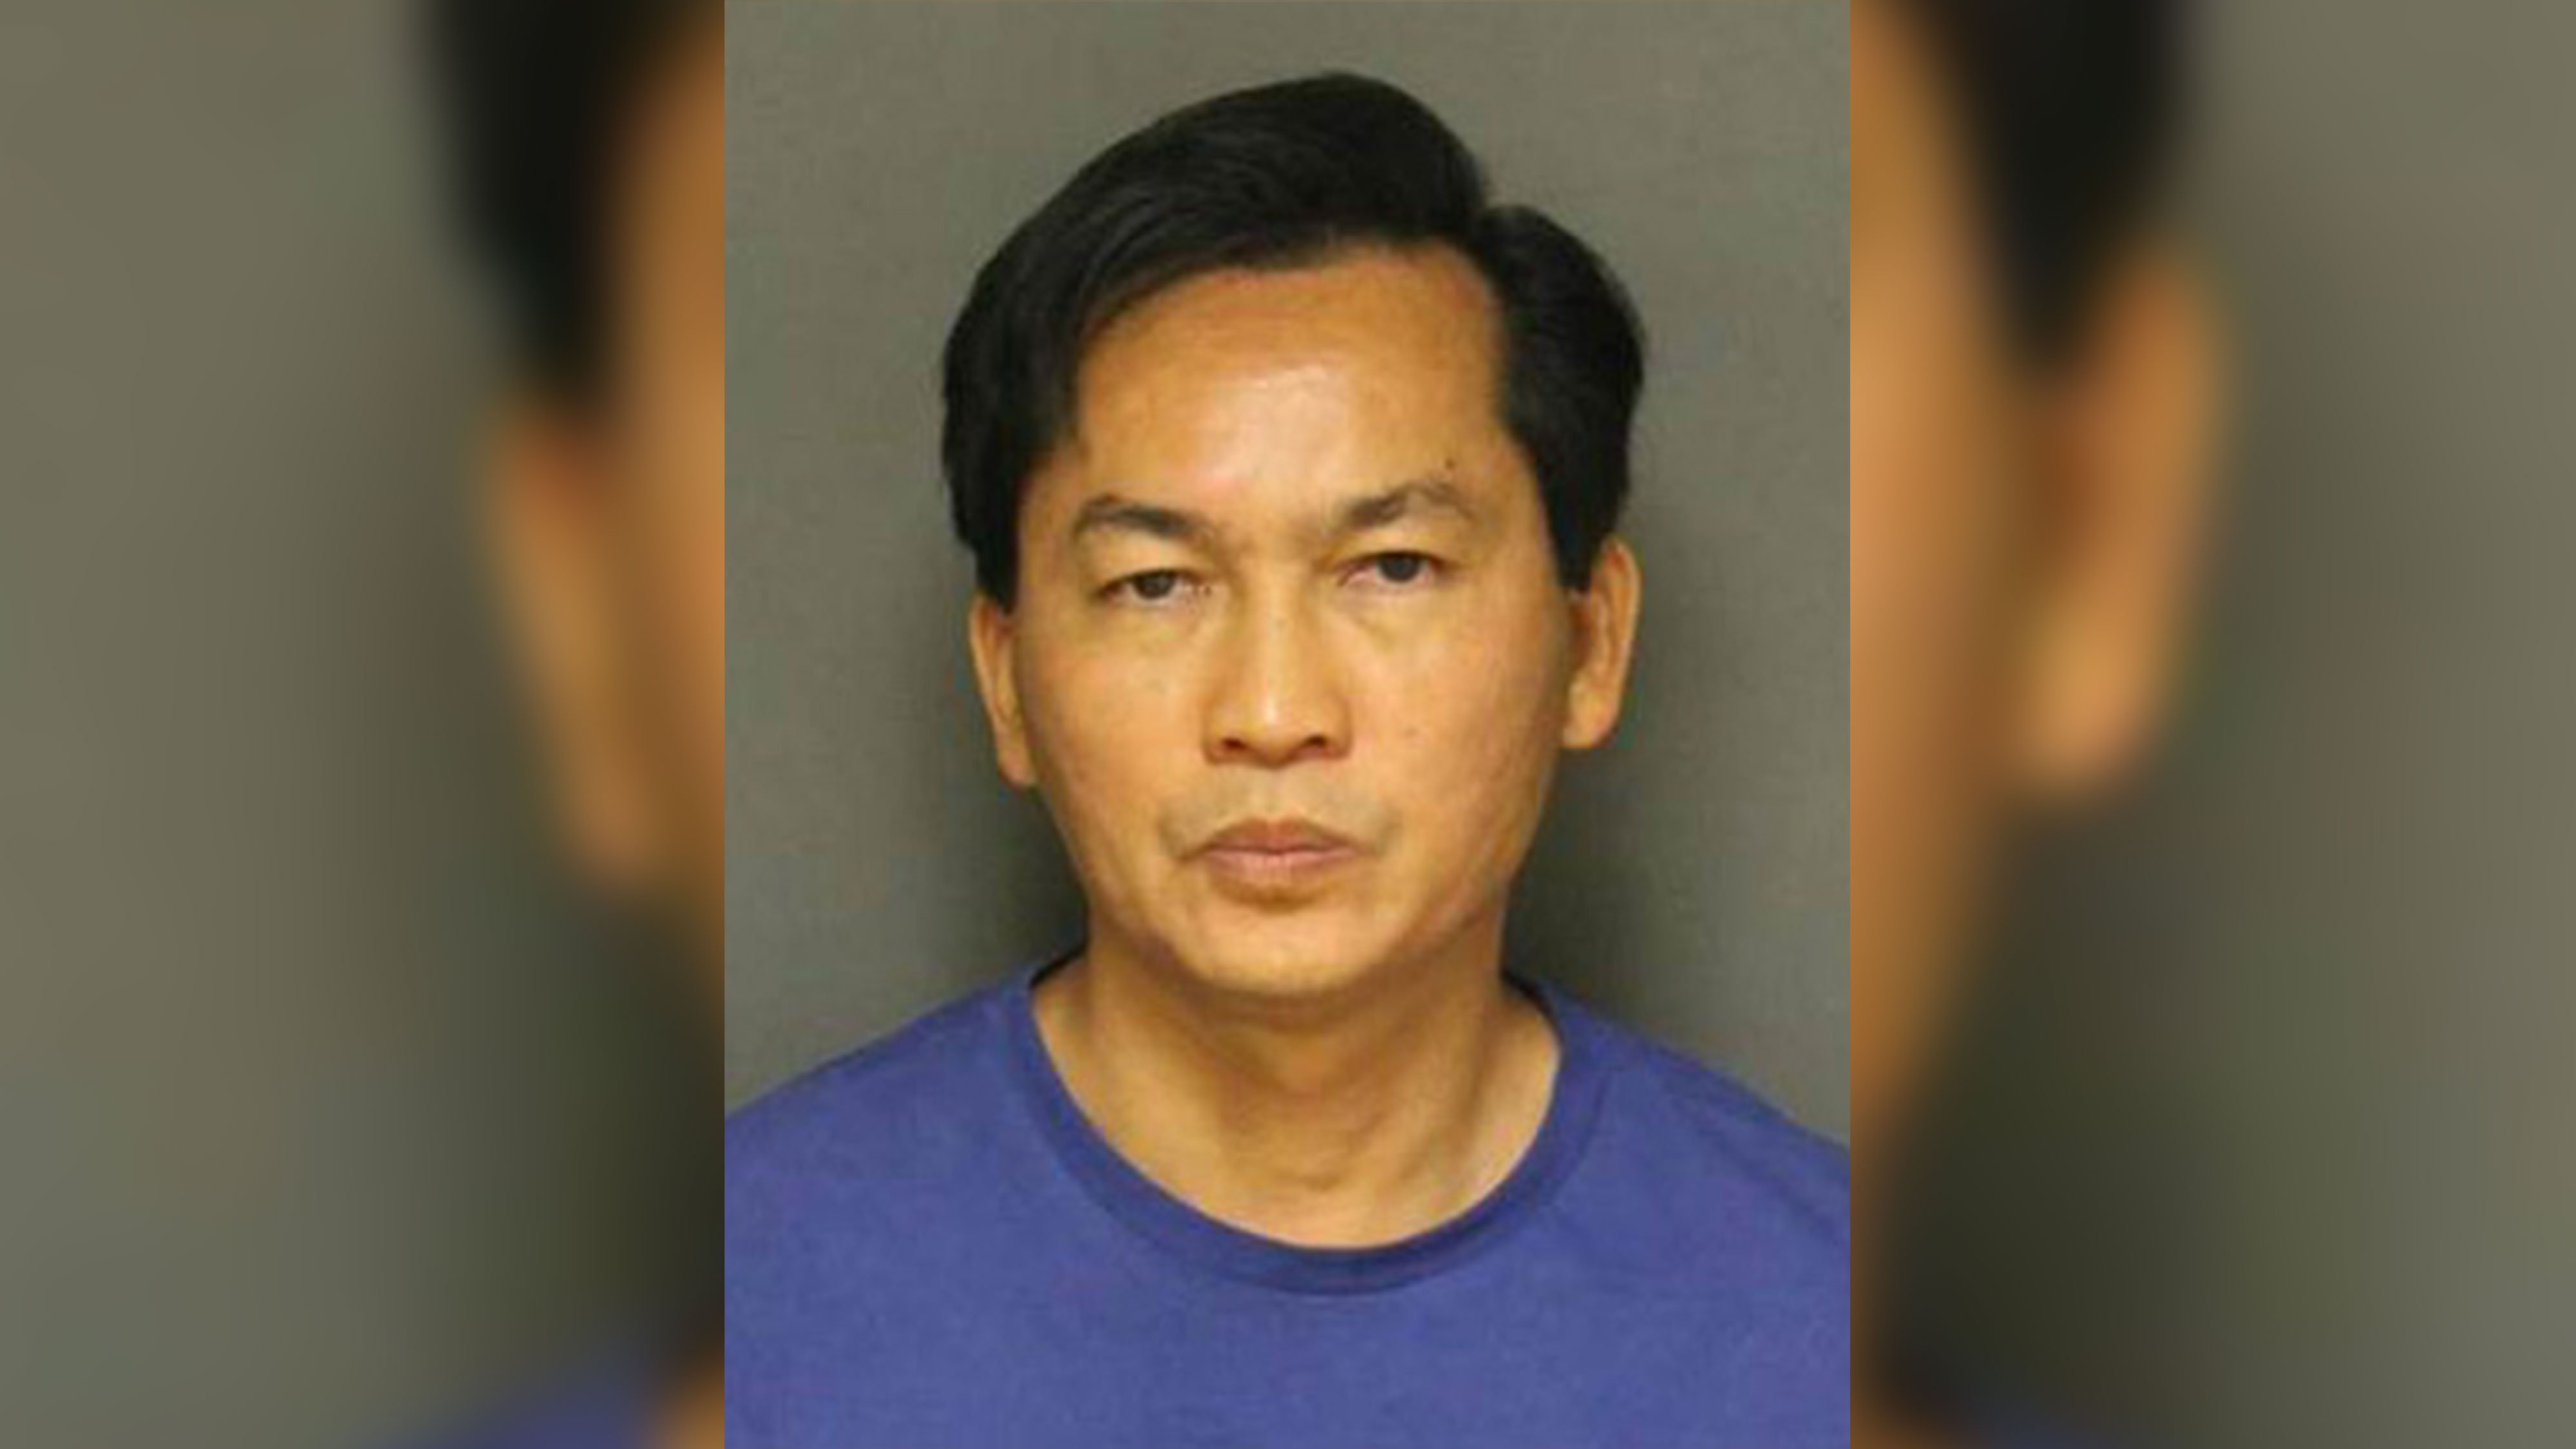 Police have arrested a co-worker in the death of retired Cal State Fullerton administrator